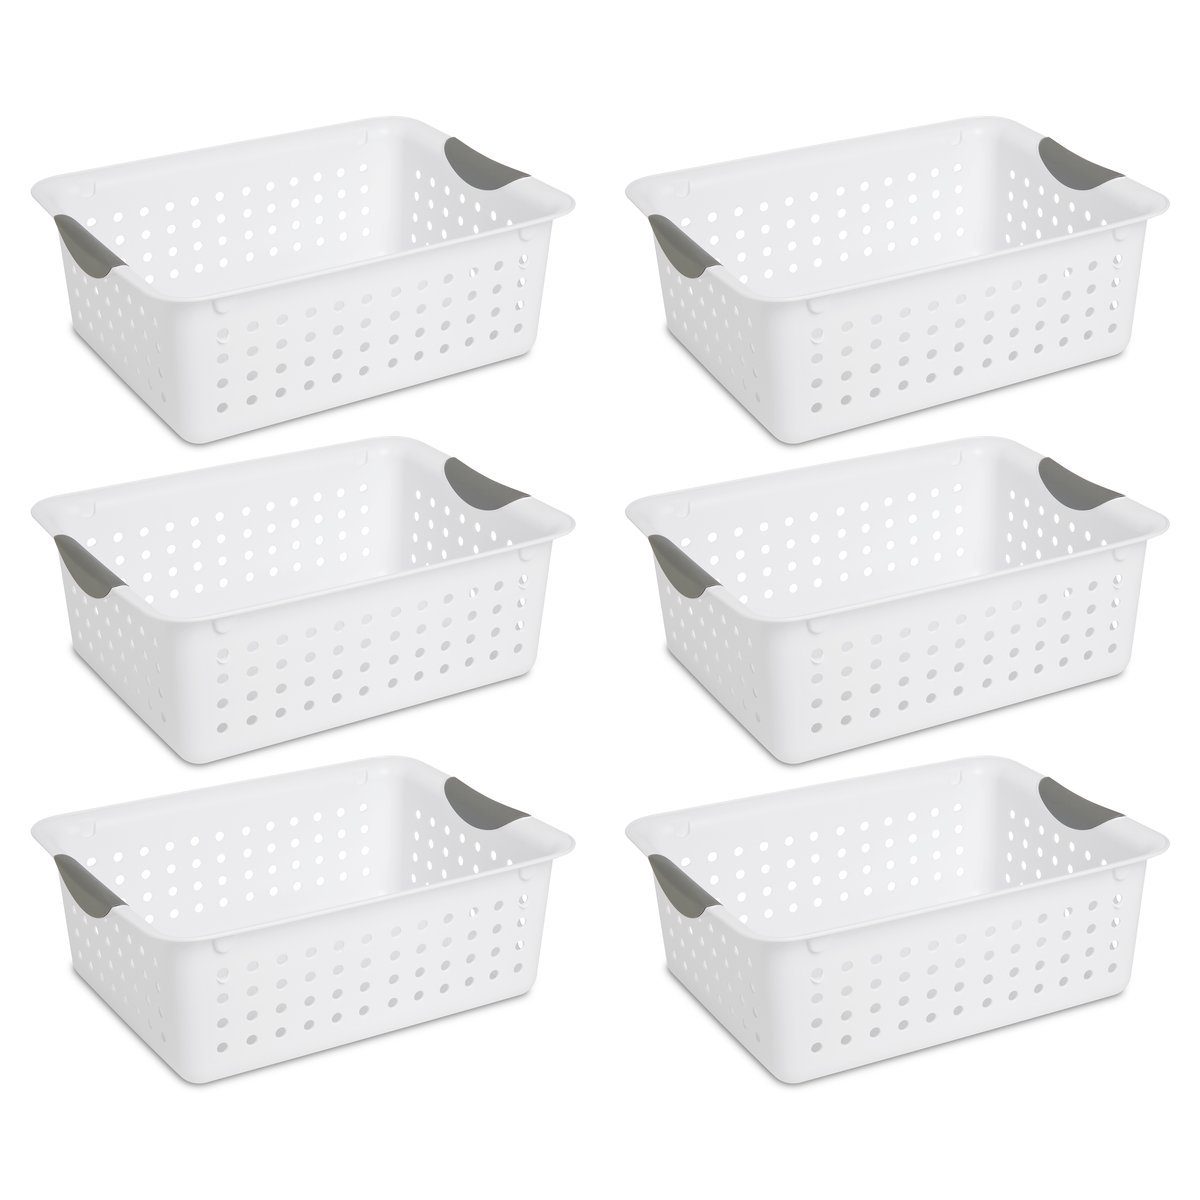 STERILITE 16248006 Medium Ultra Basket, White Basket w/Titanium Inserts, 6-Pack